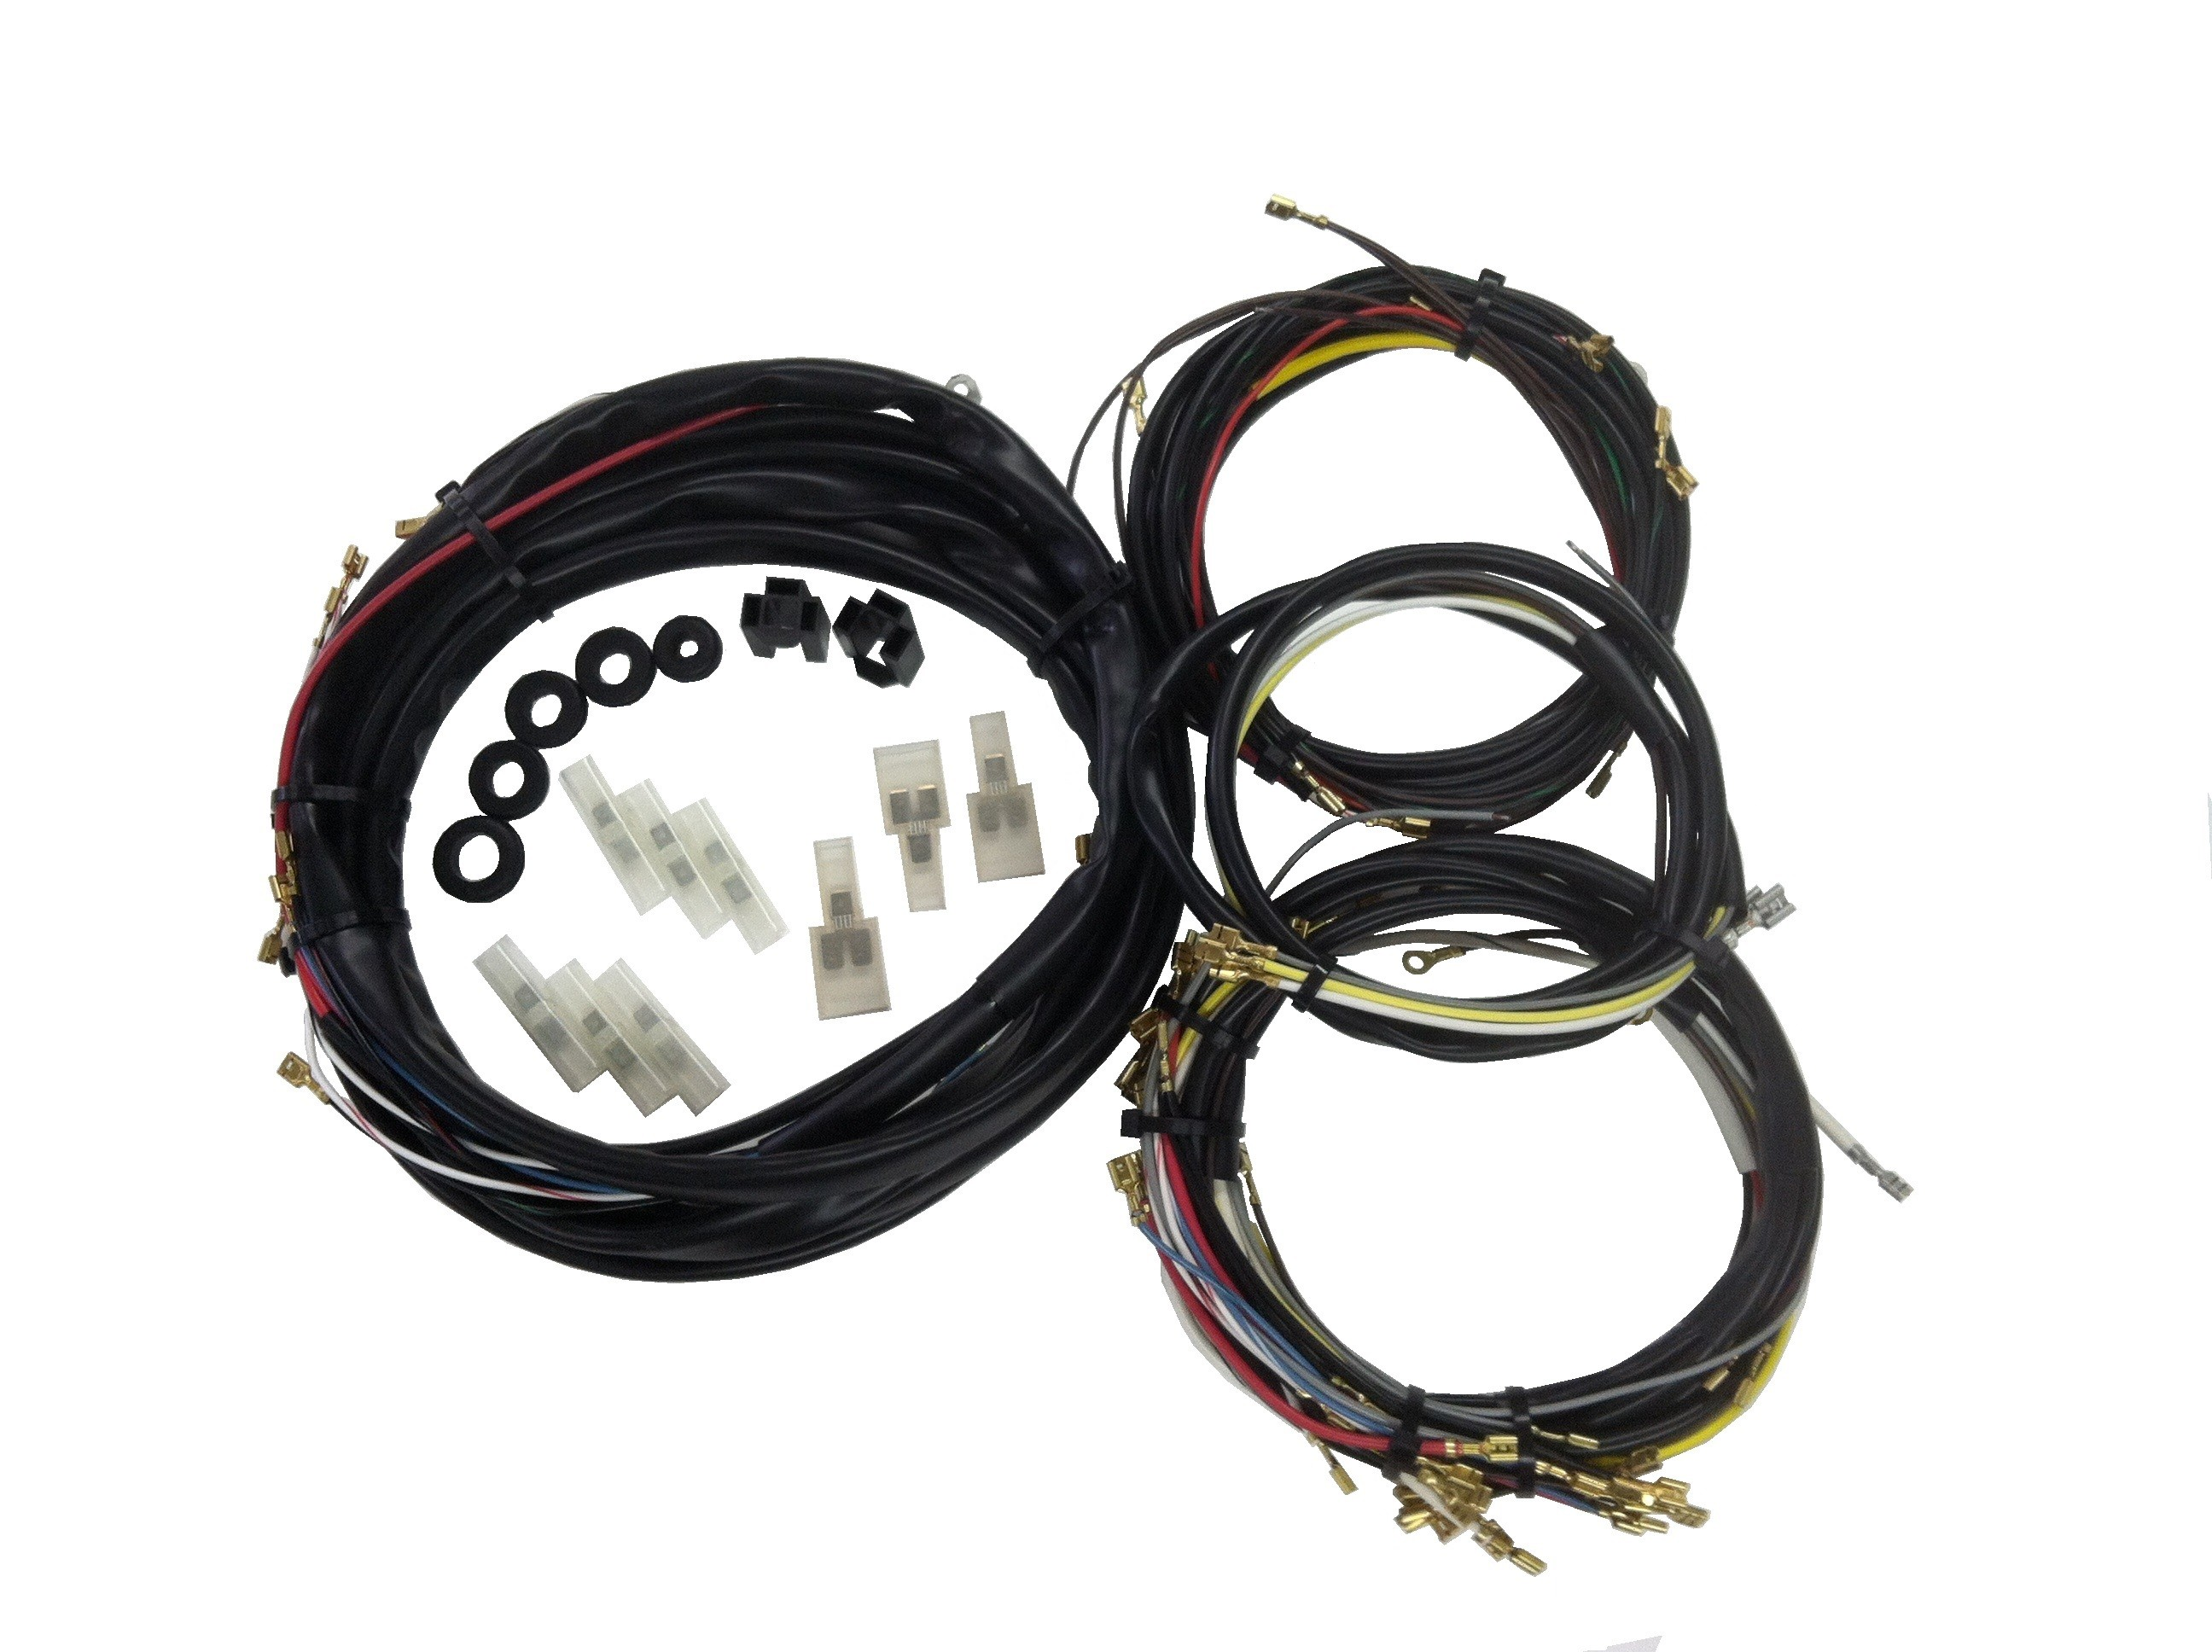 WIRING WORKS I.P.C. VW Parts, VW Bug Parts and VW Bus Parts ... on wiring 4 71 vw, wire works wiring harness, wiring 1967 vw type 1, wiring kits for vw beetle 1960,